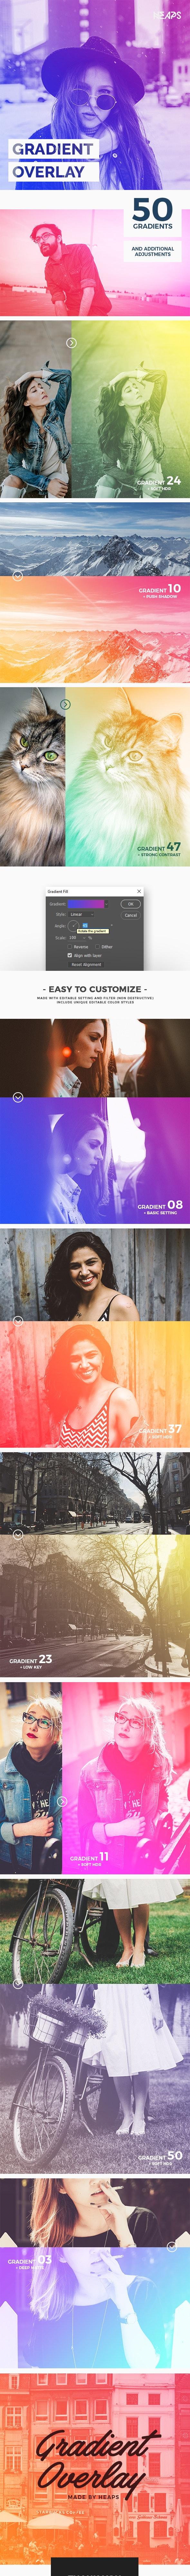 Gradient Overlay Photoshop Action - Photo Effects Actions